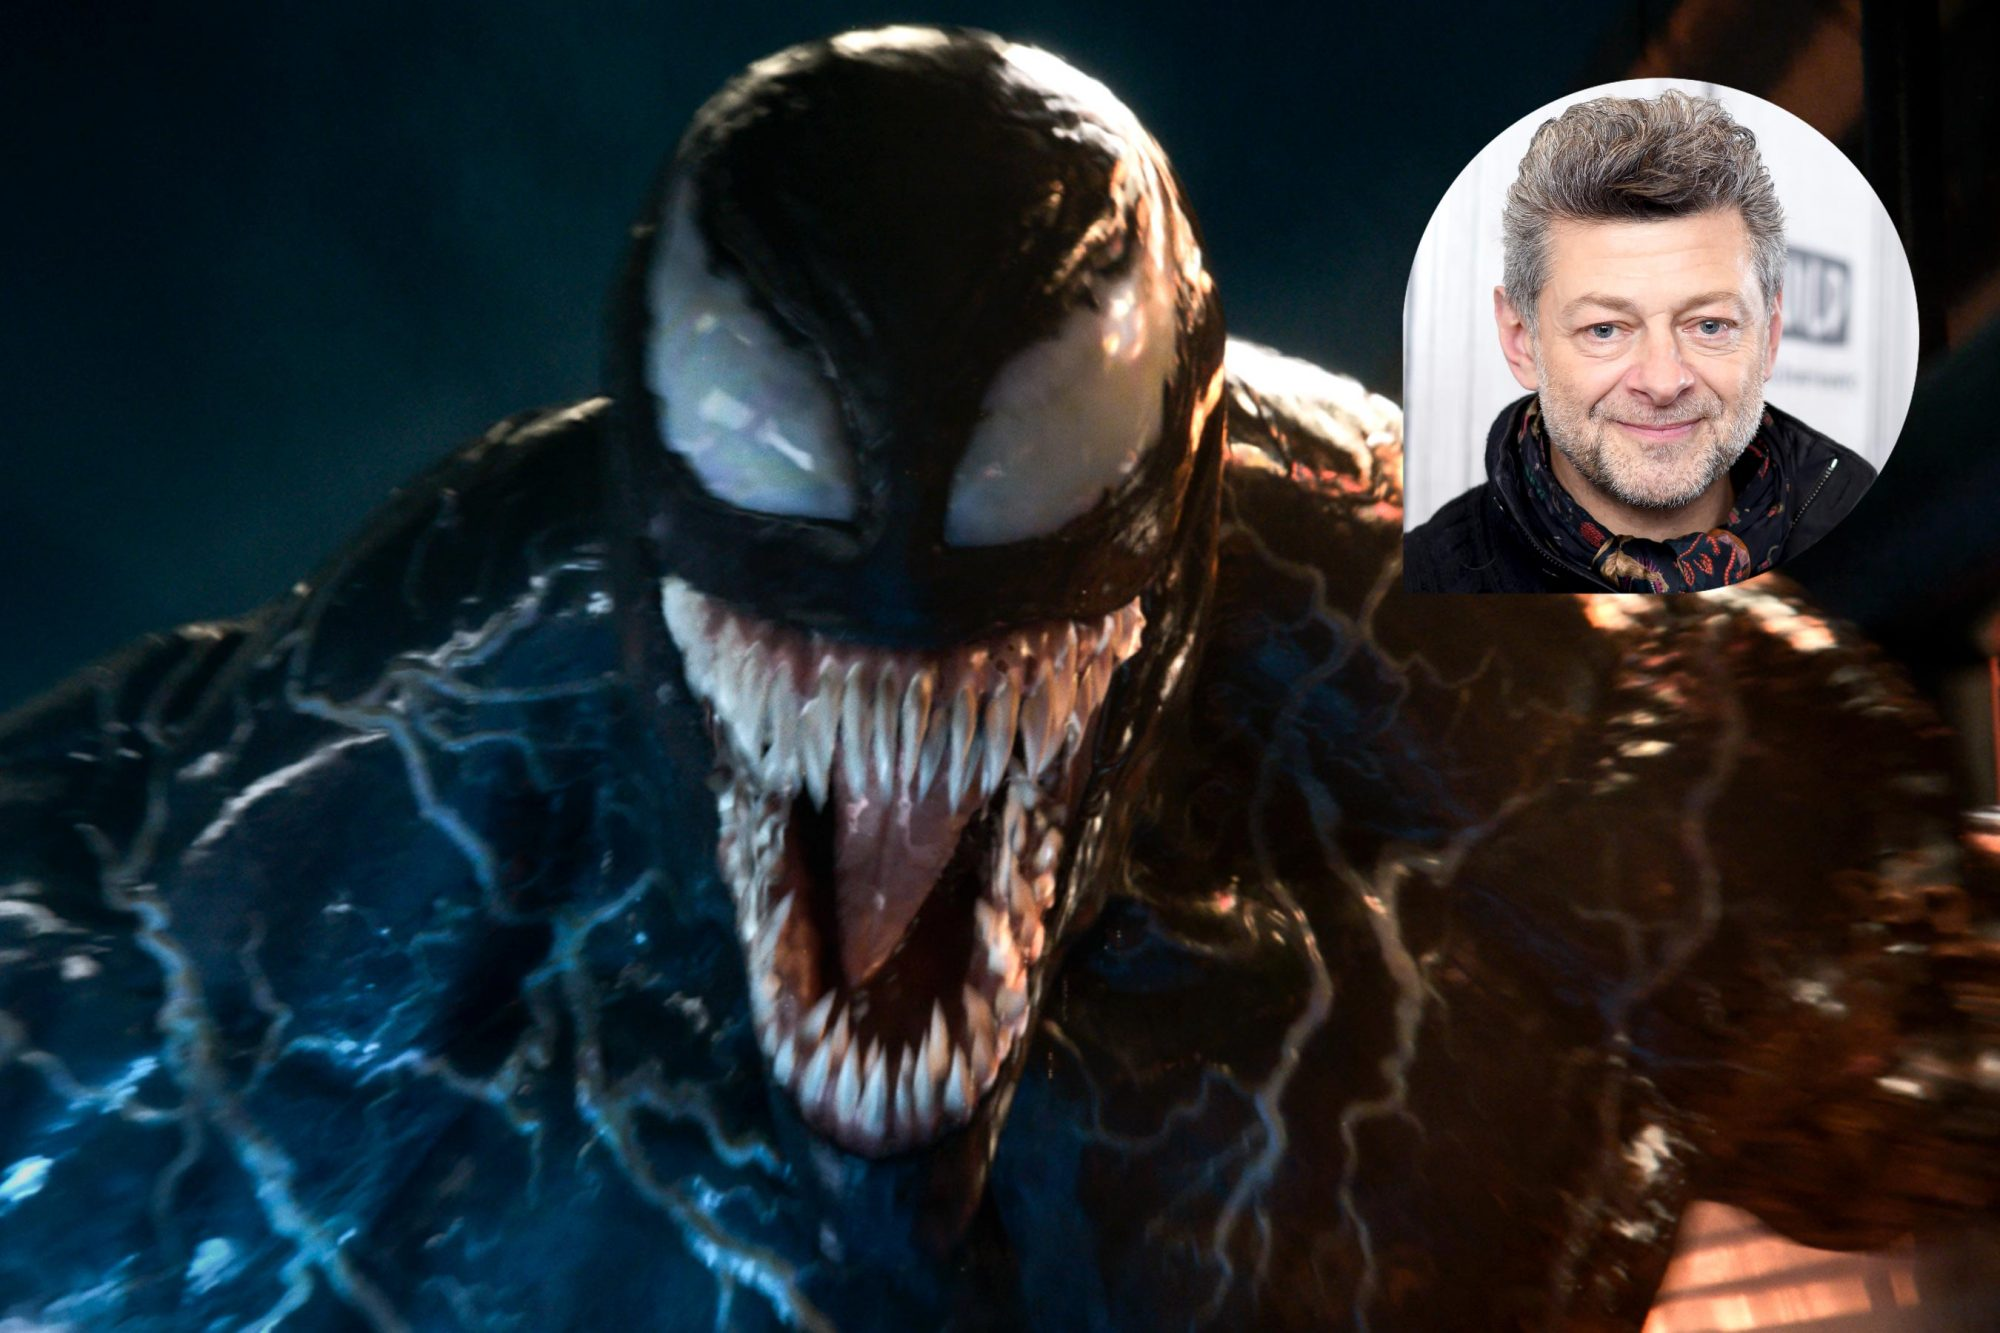 Venom (2018) Courtesy Sony Pictures NEW YORK, NY - DECEMBER 12: Actor/director Andy Serkis visits Build Series to discuss the film 'Mowgli: Legend of the Jungle' at Build Studio on December 12, 2018 in New York City. (Photo by Gary Gershoff/WireImage)